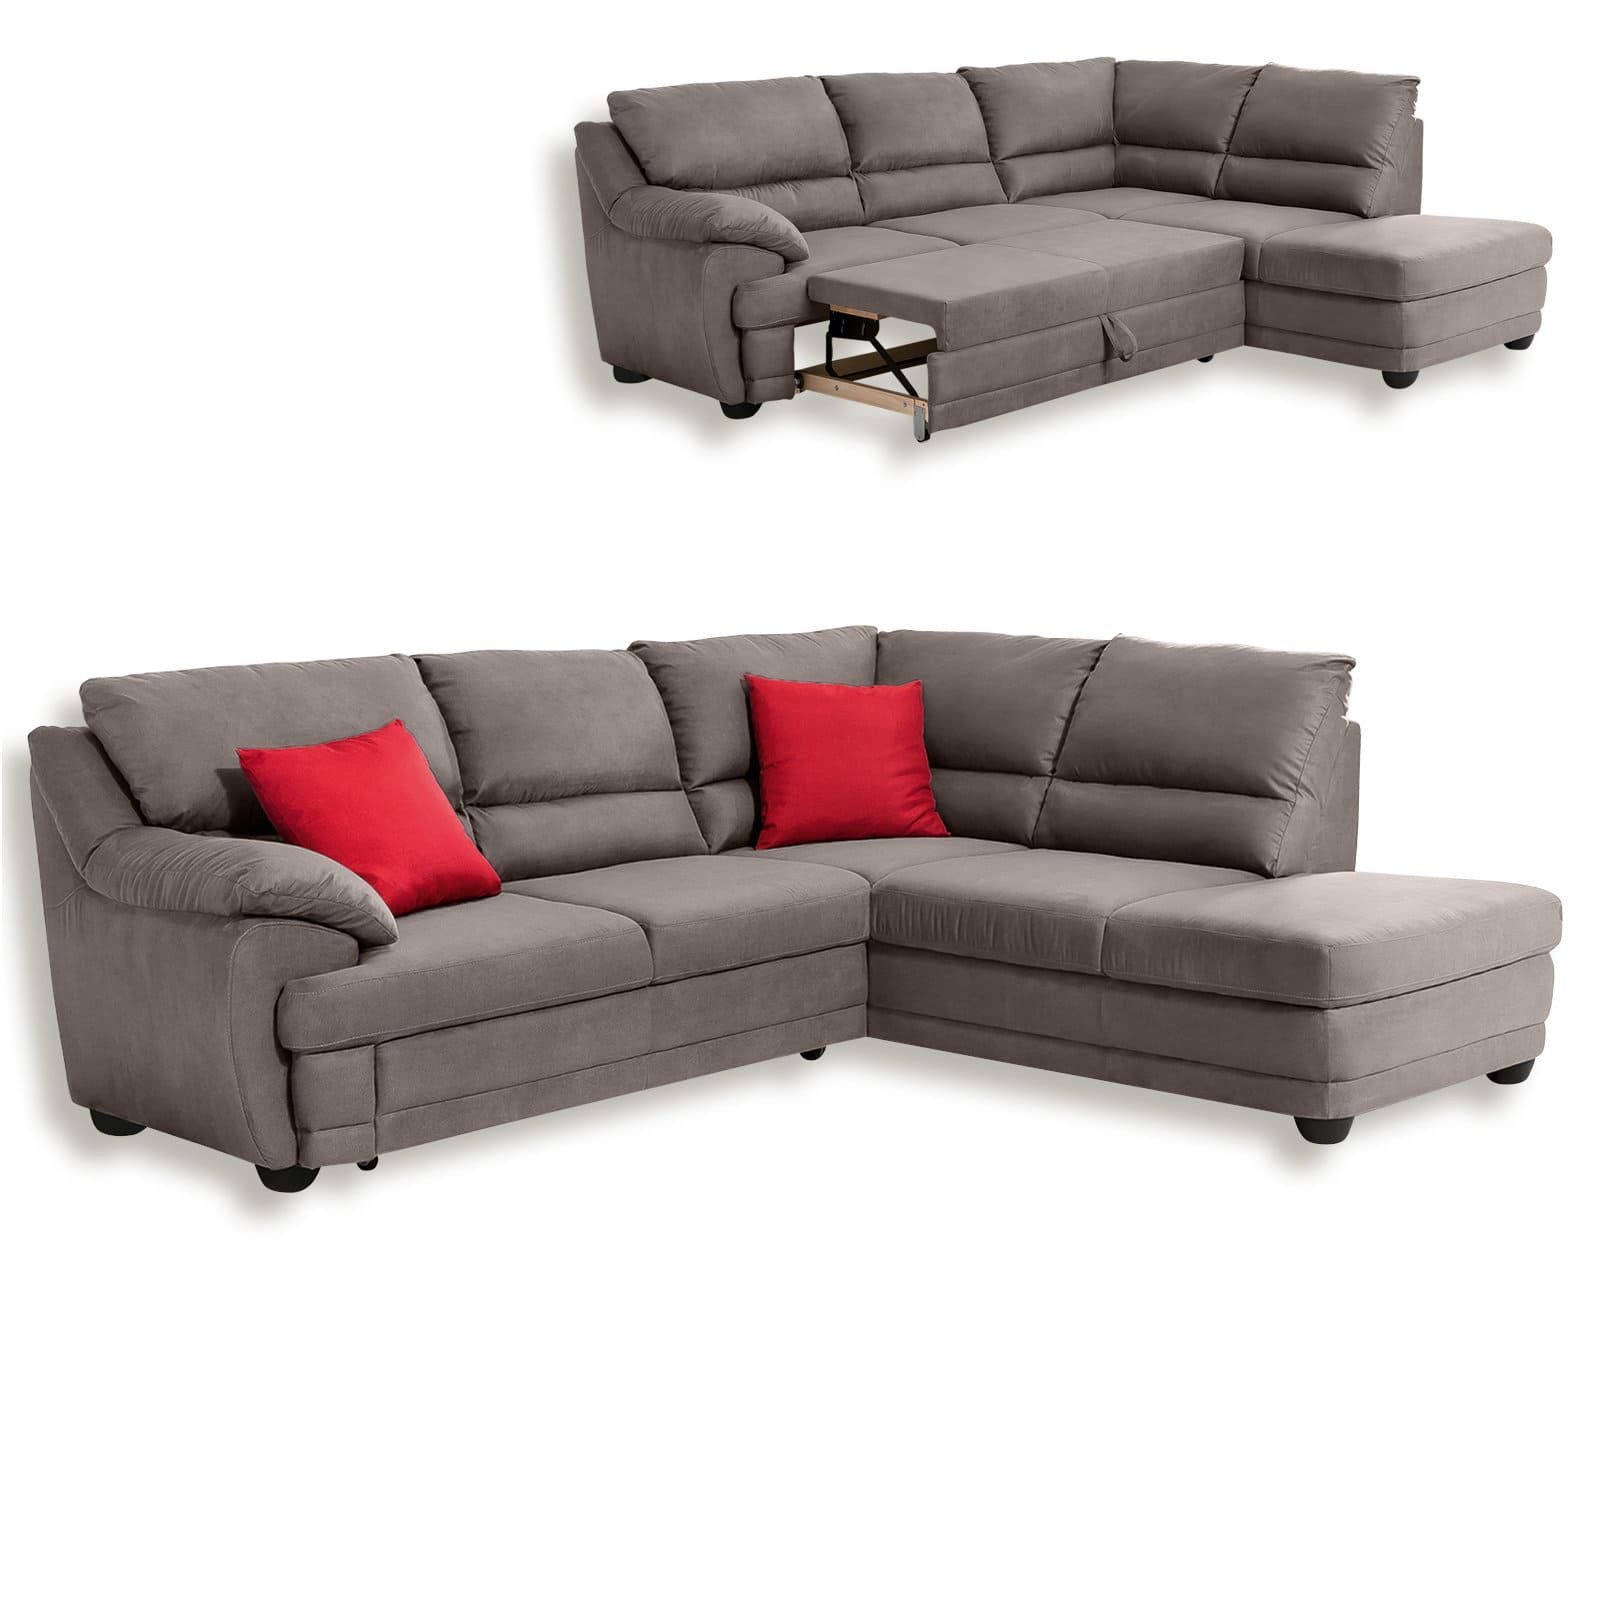 Hervorragend Preiswerte Sofas Couch Sectional Couch Home Decor